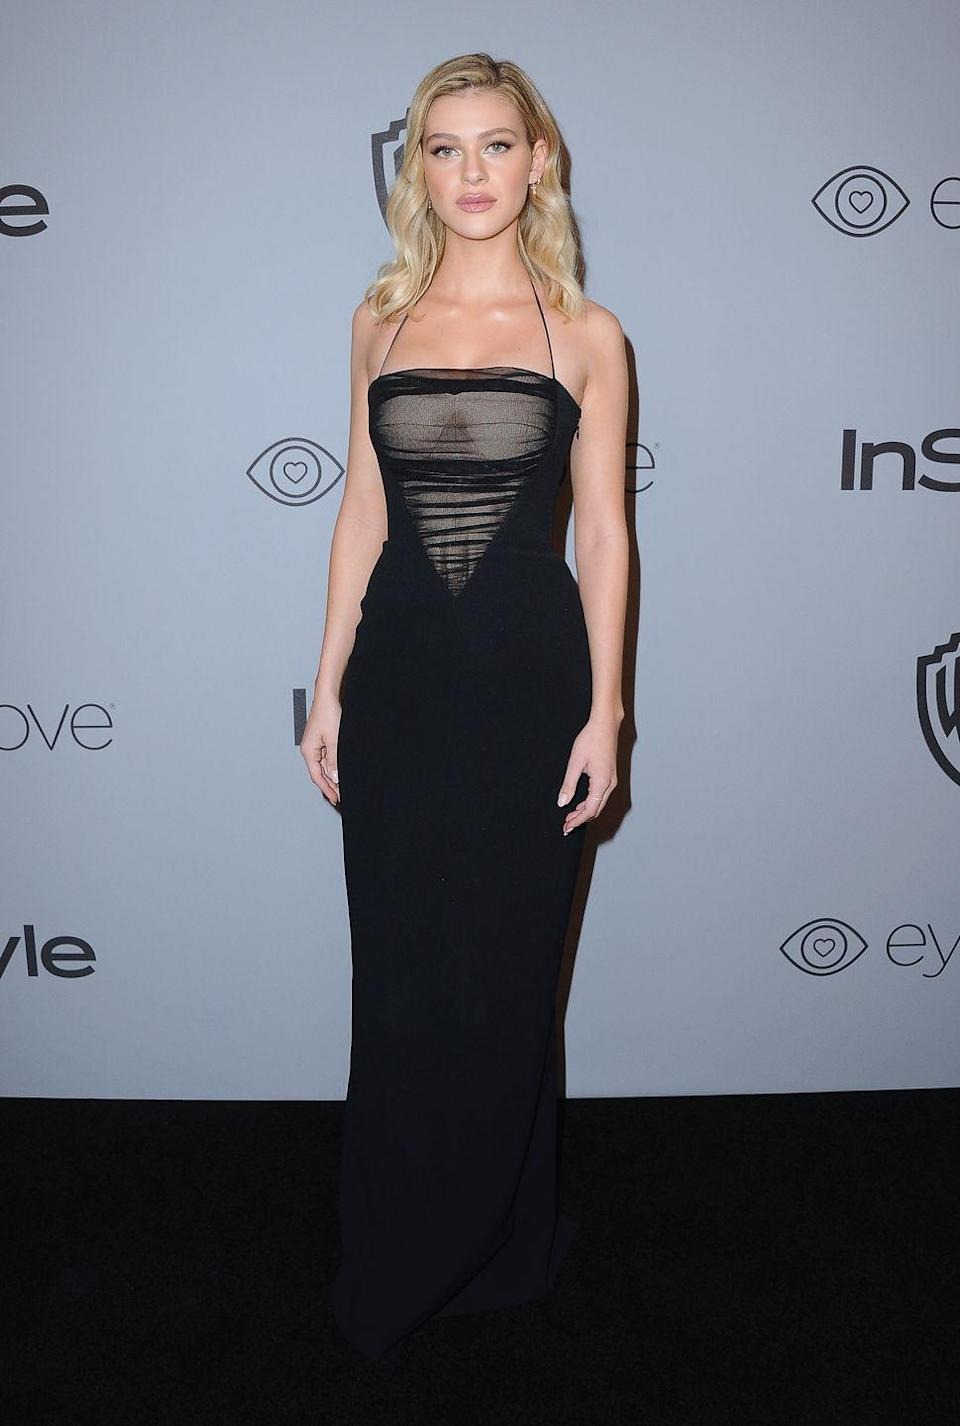 <p>The Bates Motel star wore a black column dress with sheer paneling for the after party. <br></p>